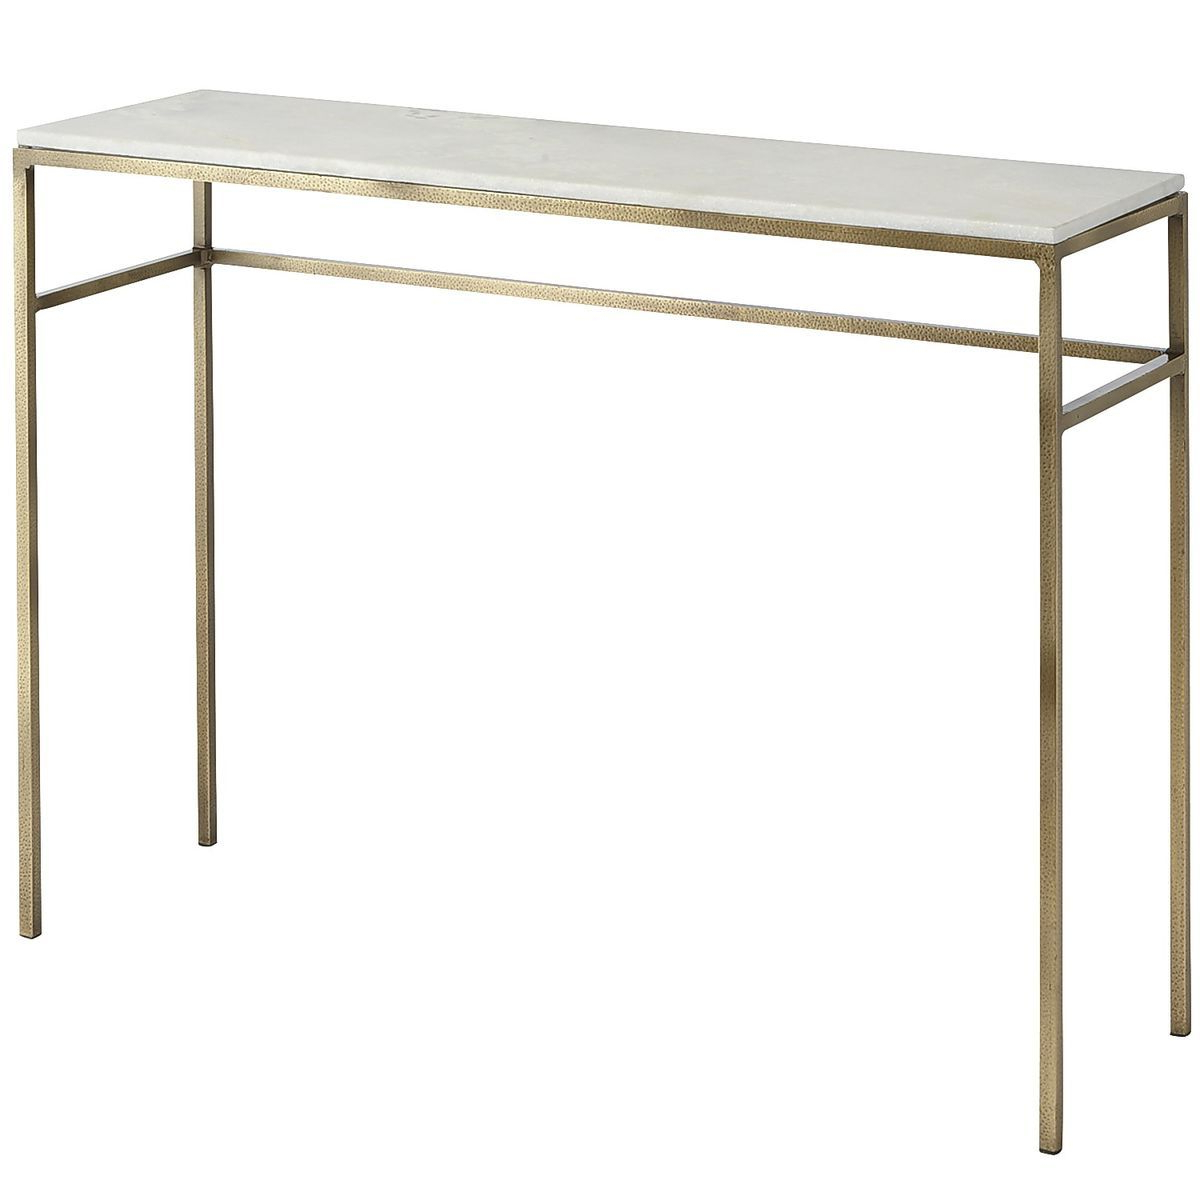 2017 Elke Marble Console Tables With Polished Aluminum Base Throughout If You're Looking For A Way To Elevate Your Living Space, Ethel (View 1 of 20)